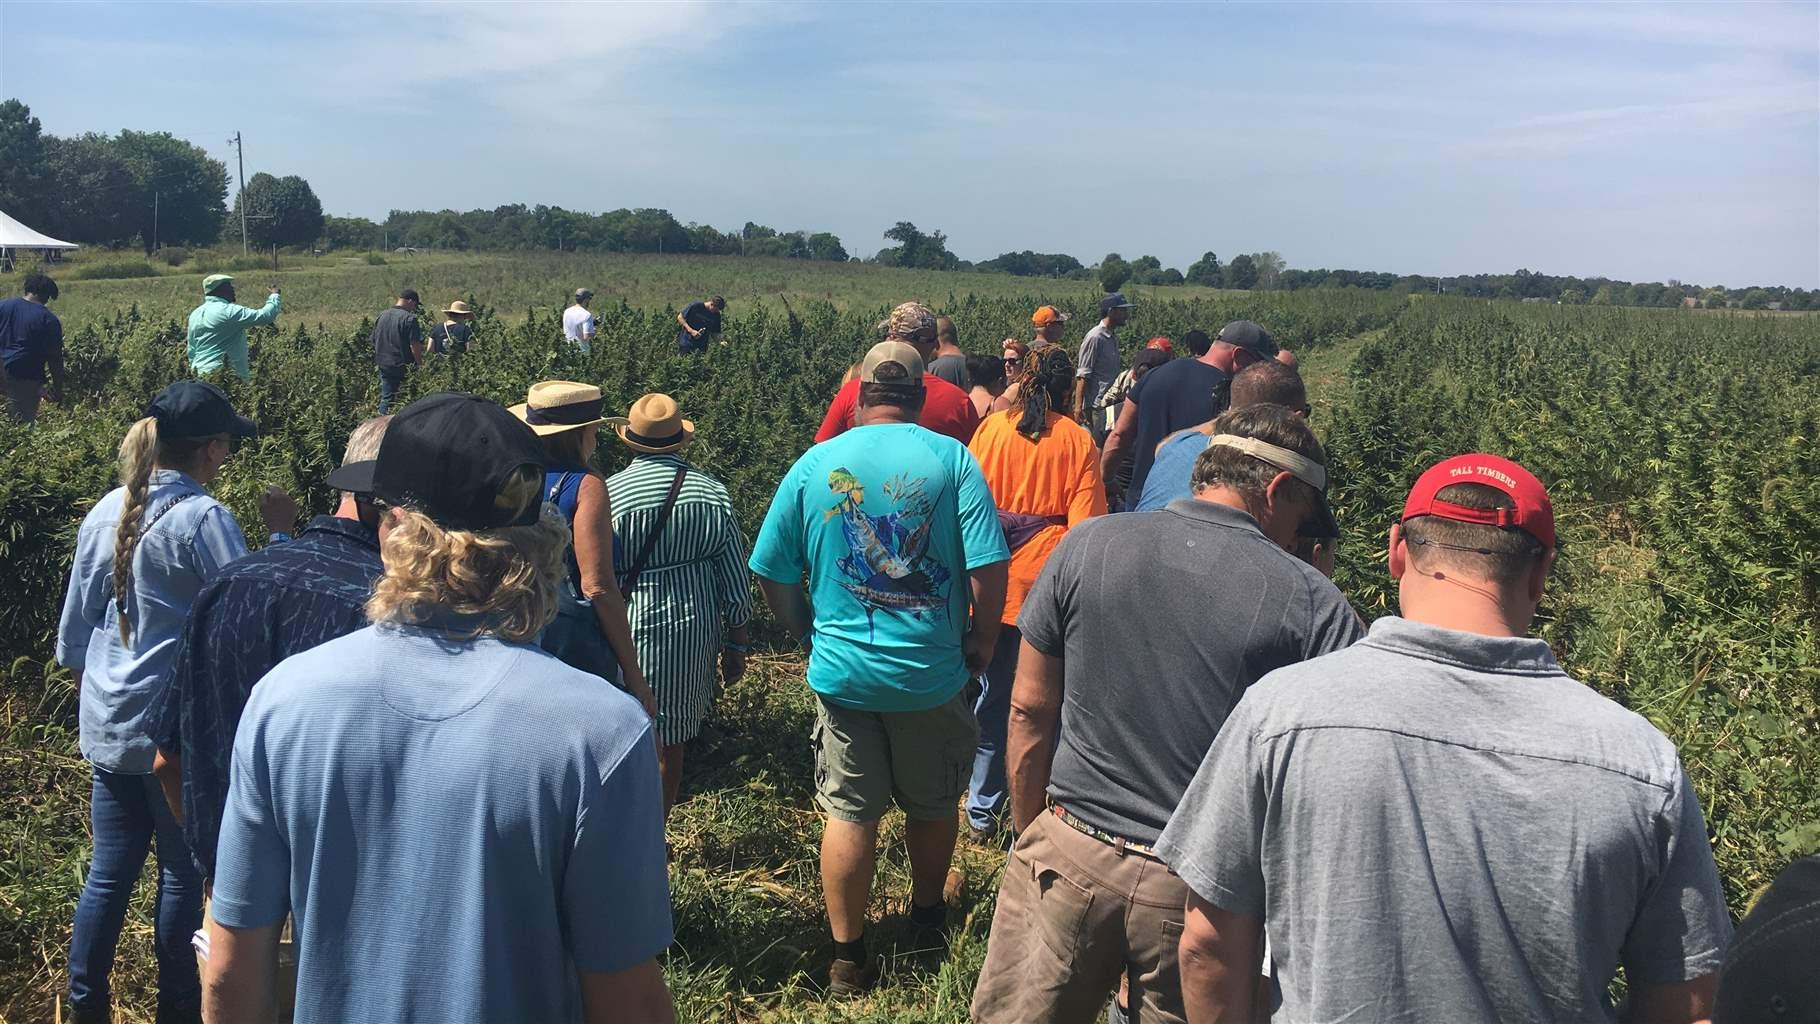 Dreaming Big For A Risky Hemp Crop The Pew Charitable Trusts